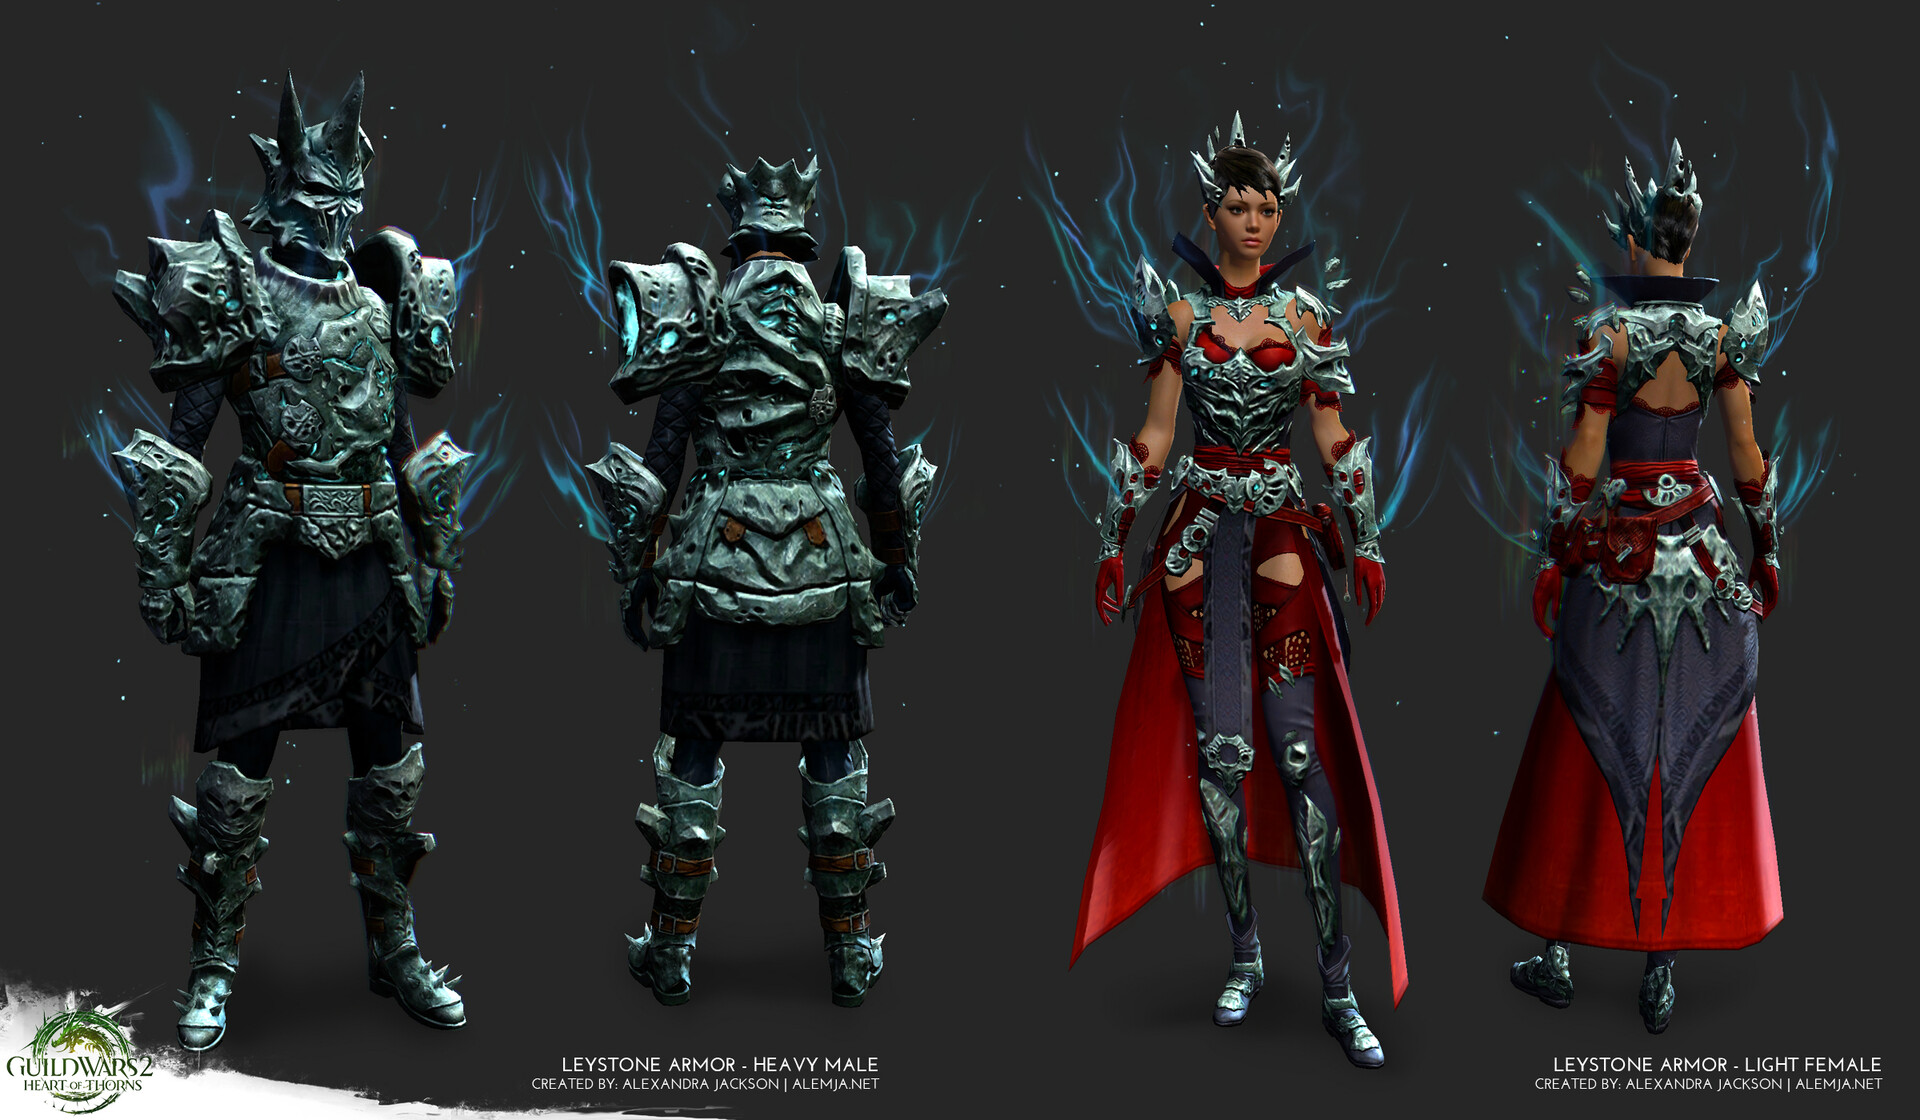 Worked on the armor game ready model and texures. This armor features VFX that were handled by the VFX team. This set was for Guild Wars 2 Heart of Thorns